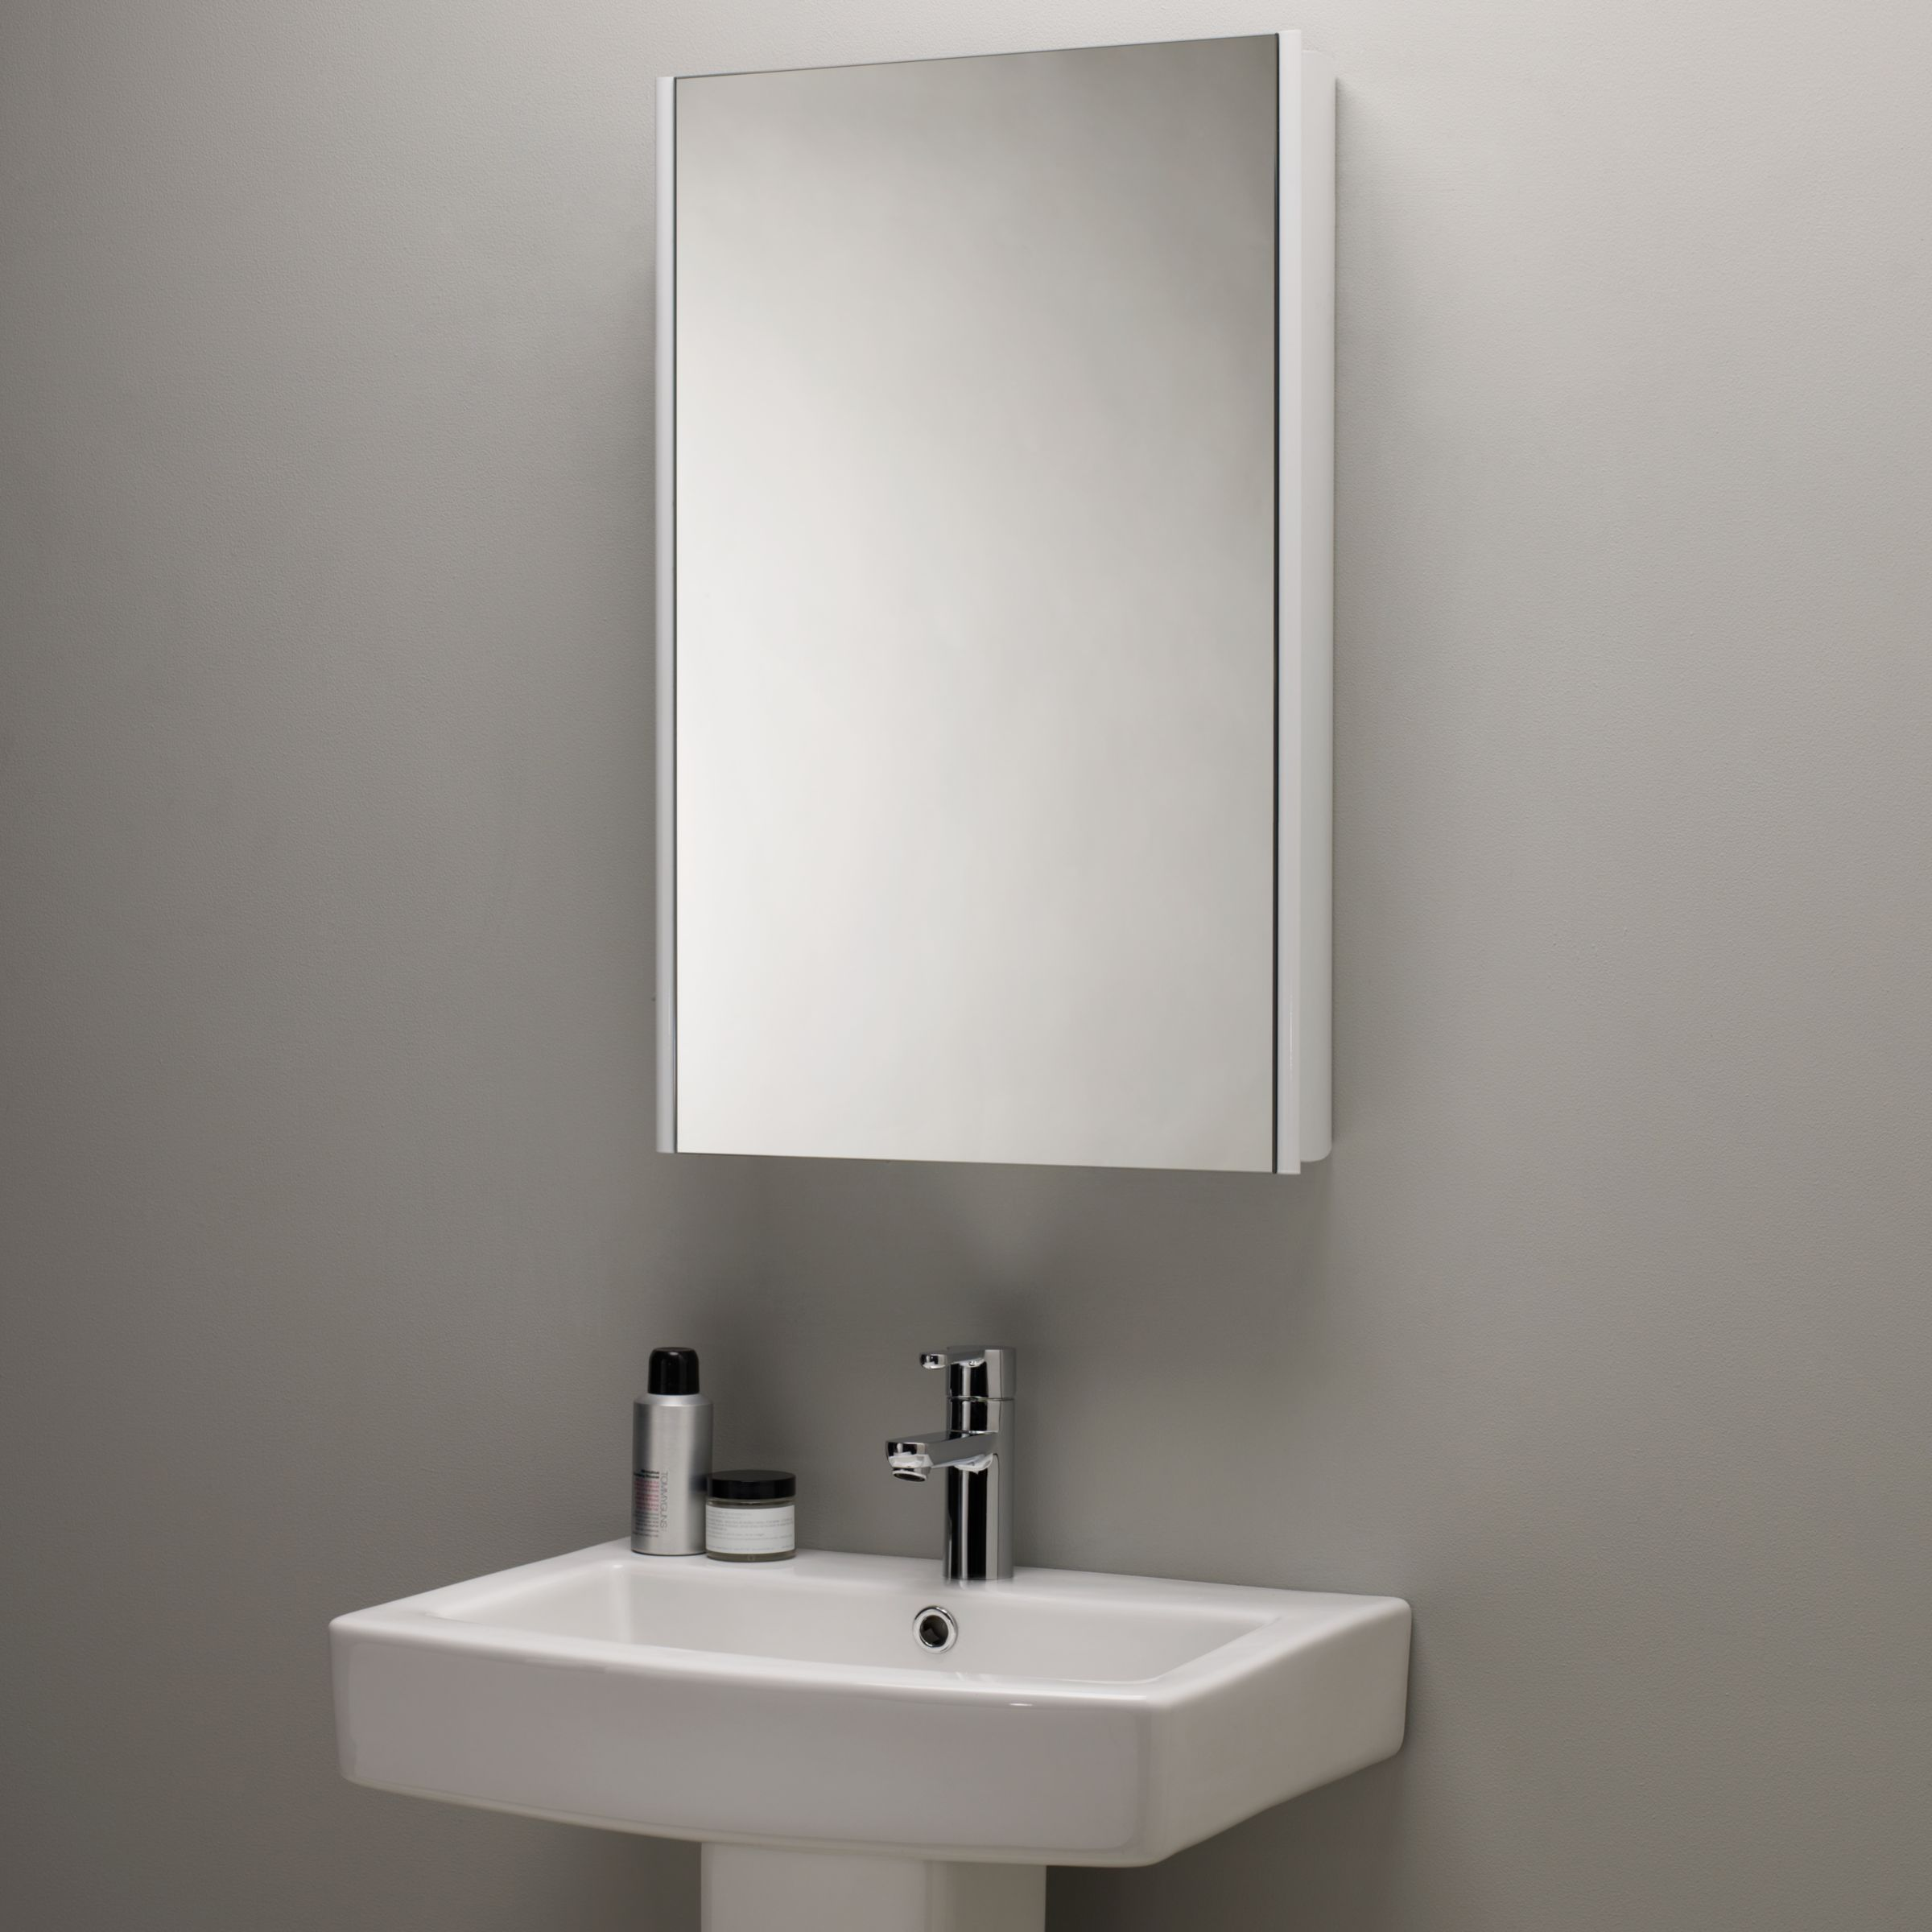 Roper Rhodes Roper Rhodes Limit Slimline Single Bathroom Cabinet with Double-Sided Mirror